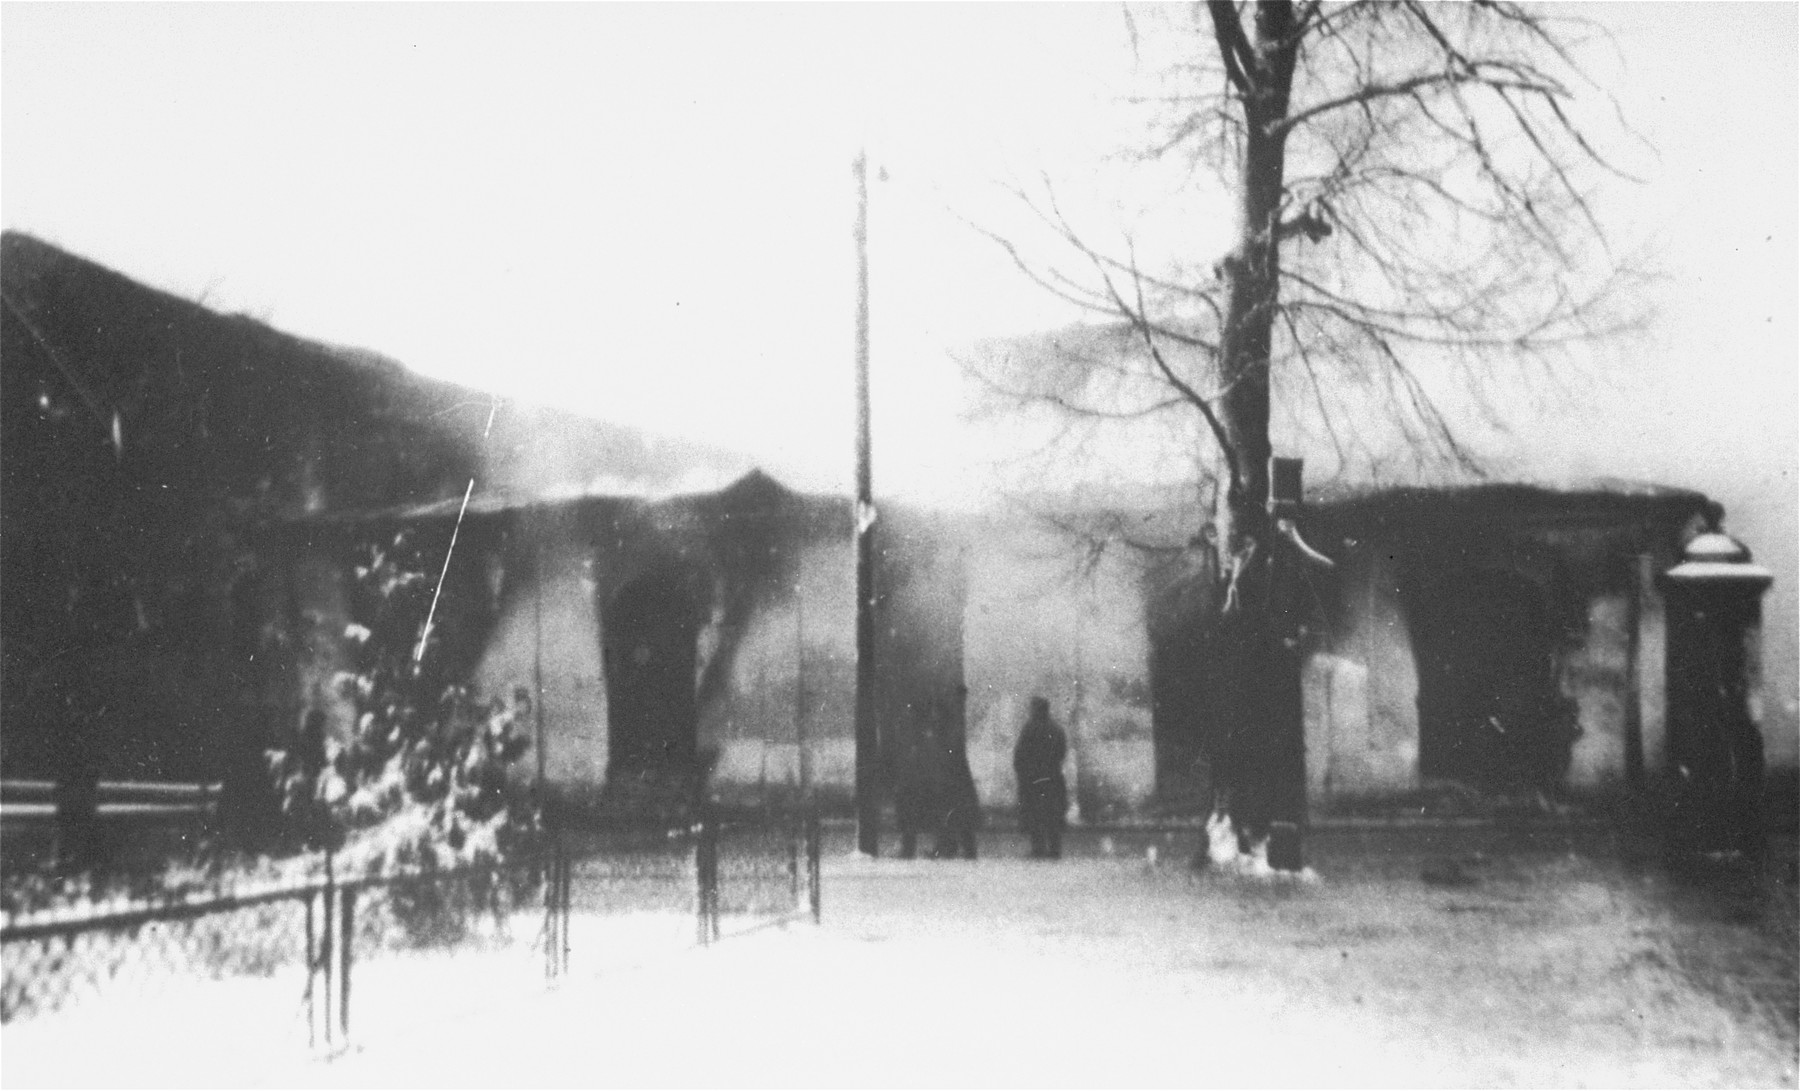 German soldiers view the burning of a synagogue in Siedlce.